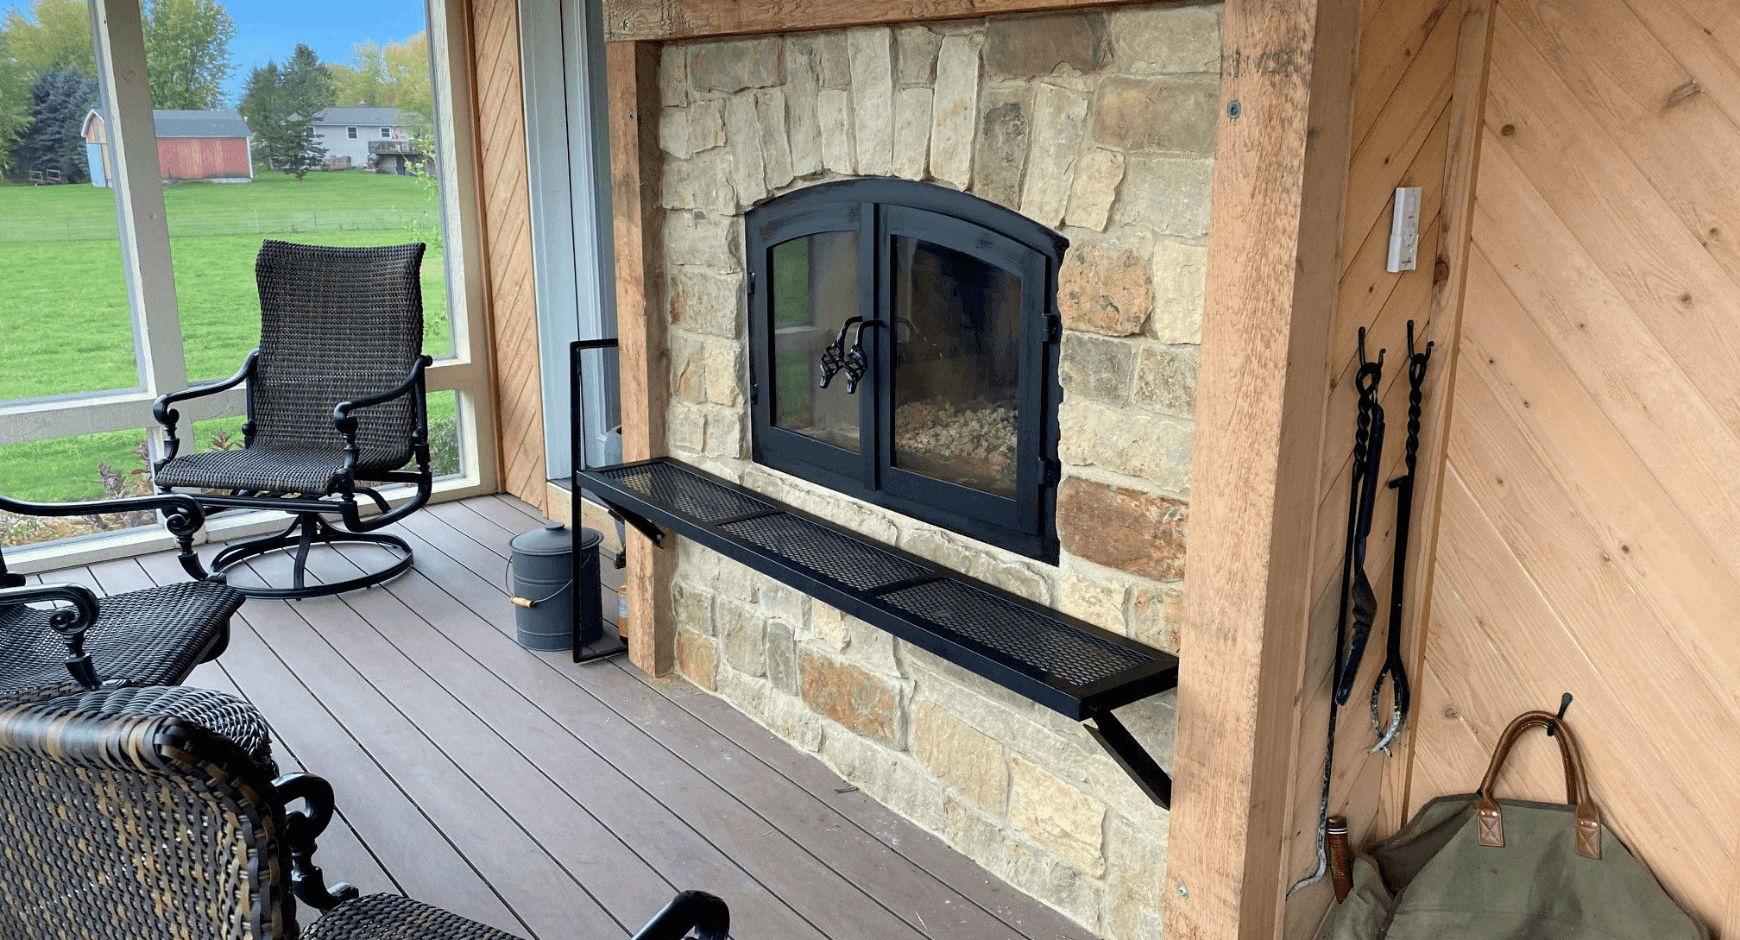 Farm Style Screened in Deck with a Fireplace